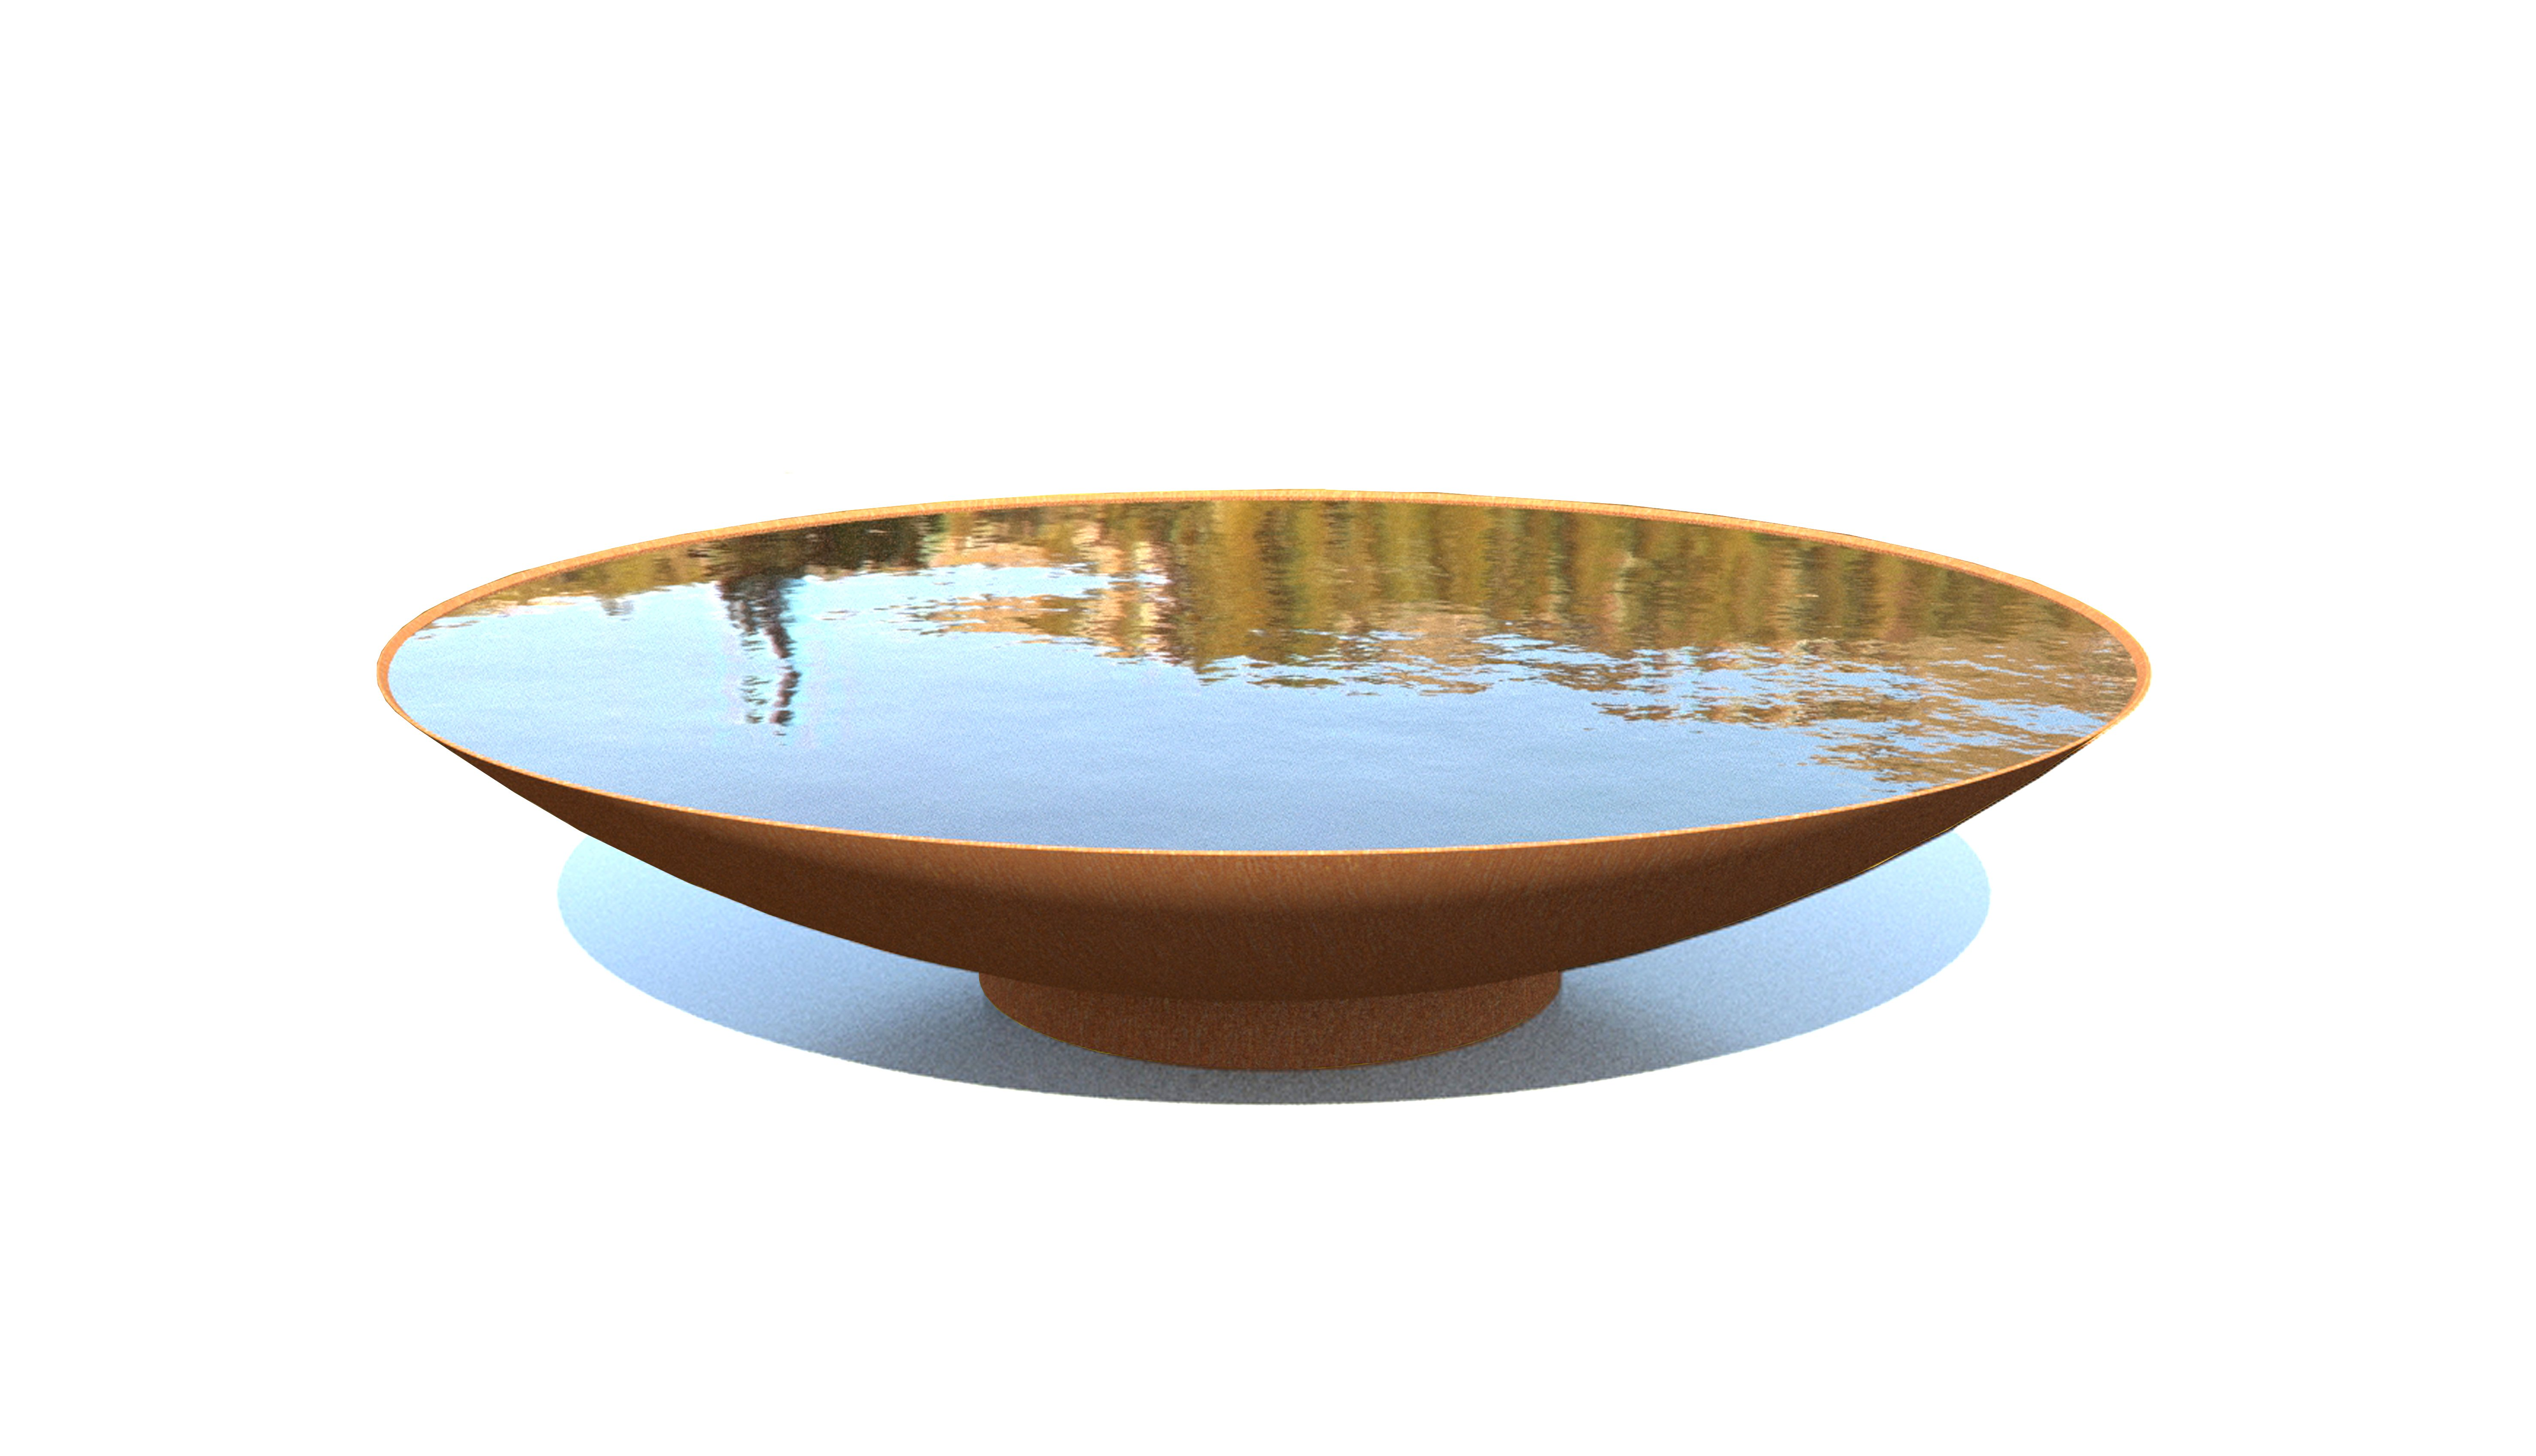 waterelement waterbowl cortensteel